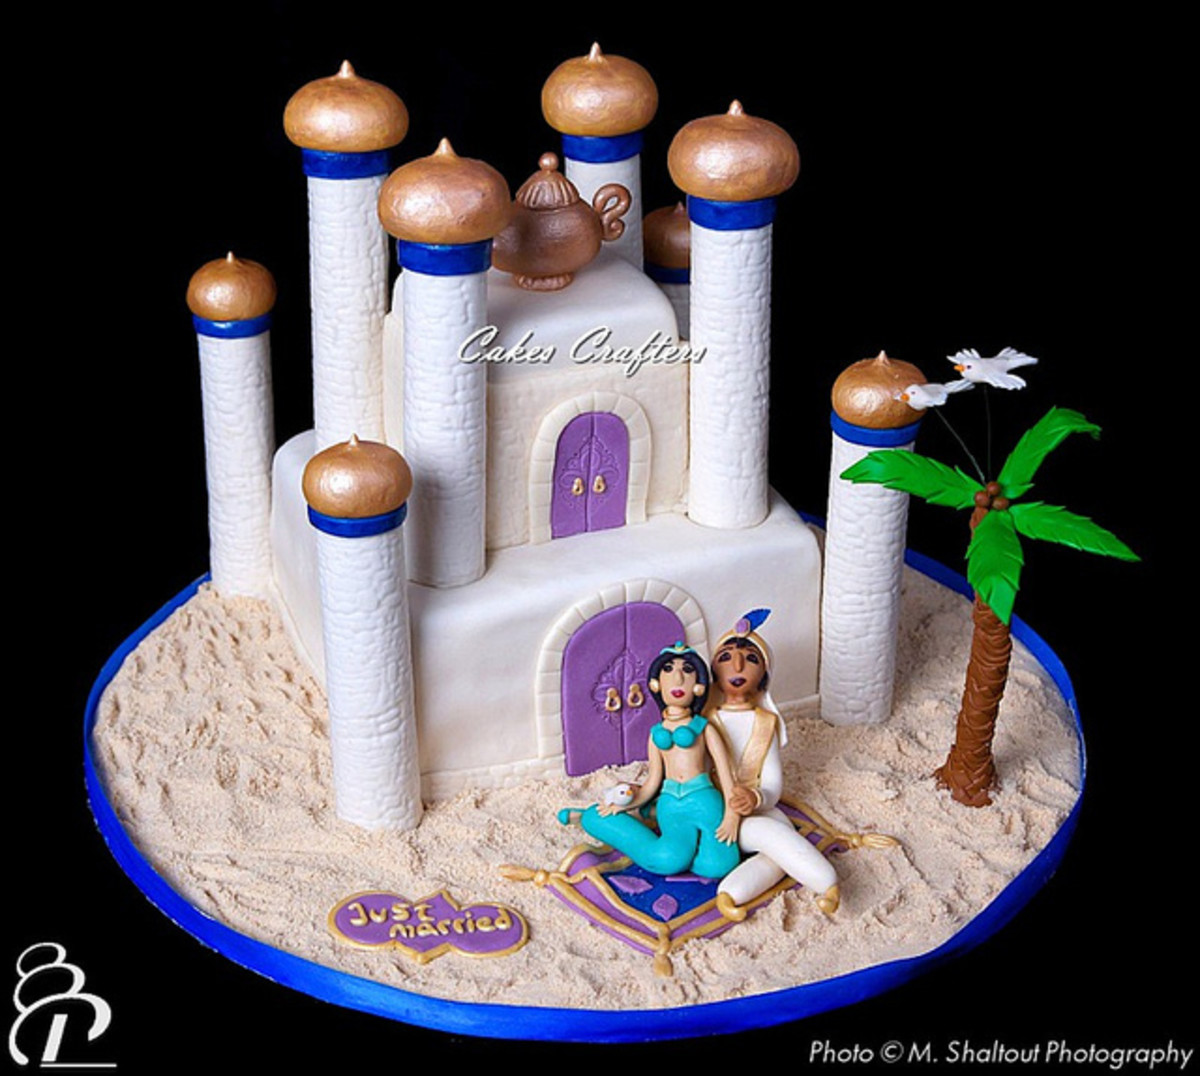 Princess Jasmine and Aladdin Disney Wedding Cake